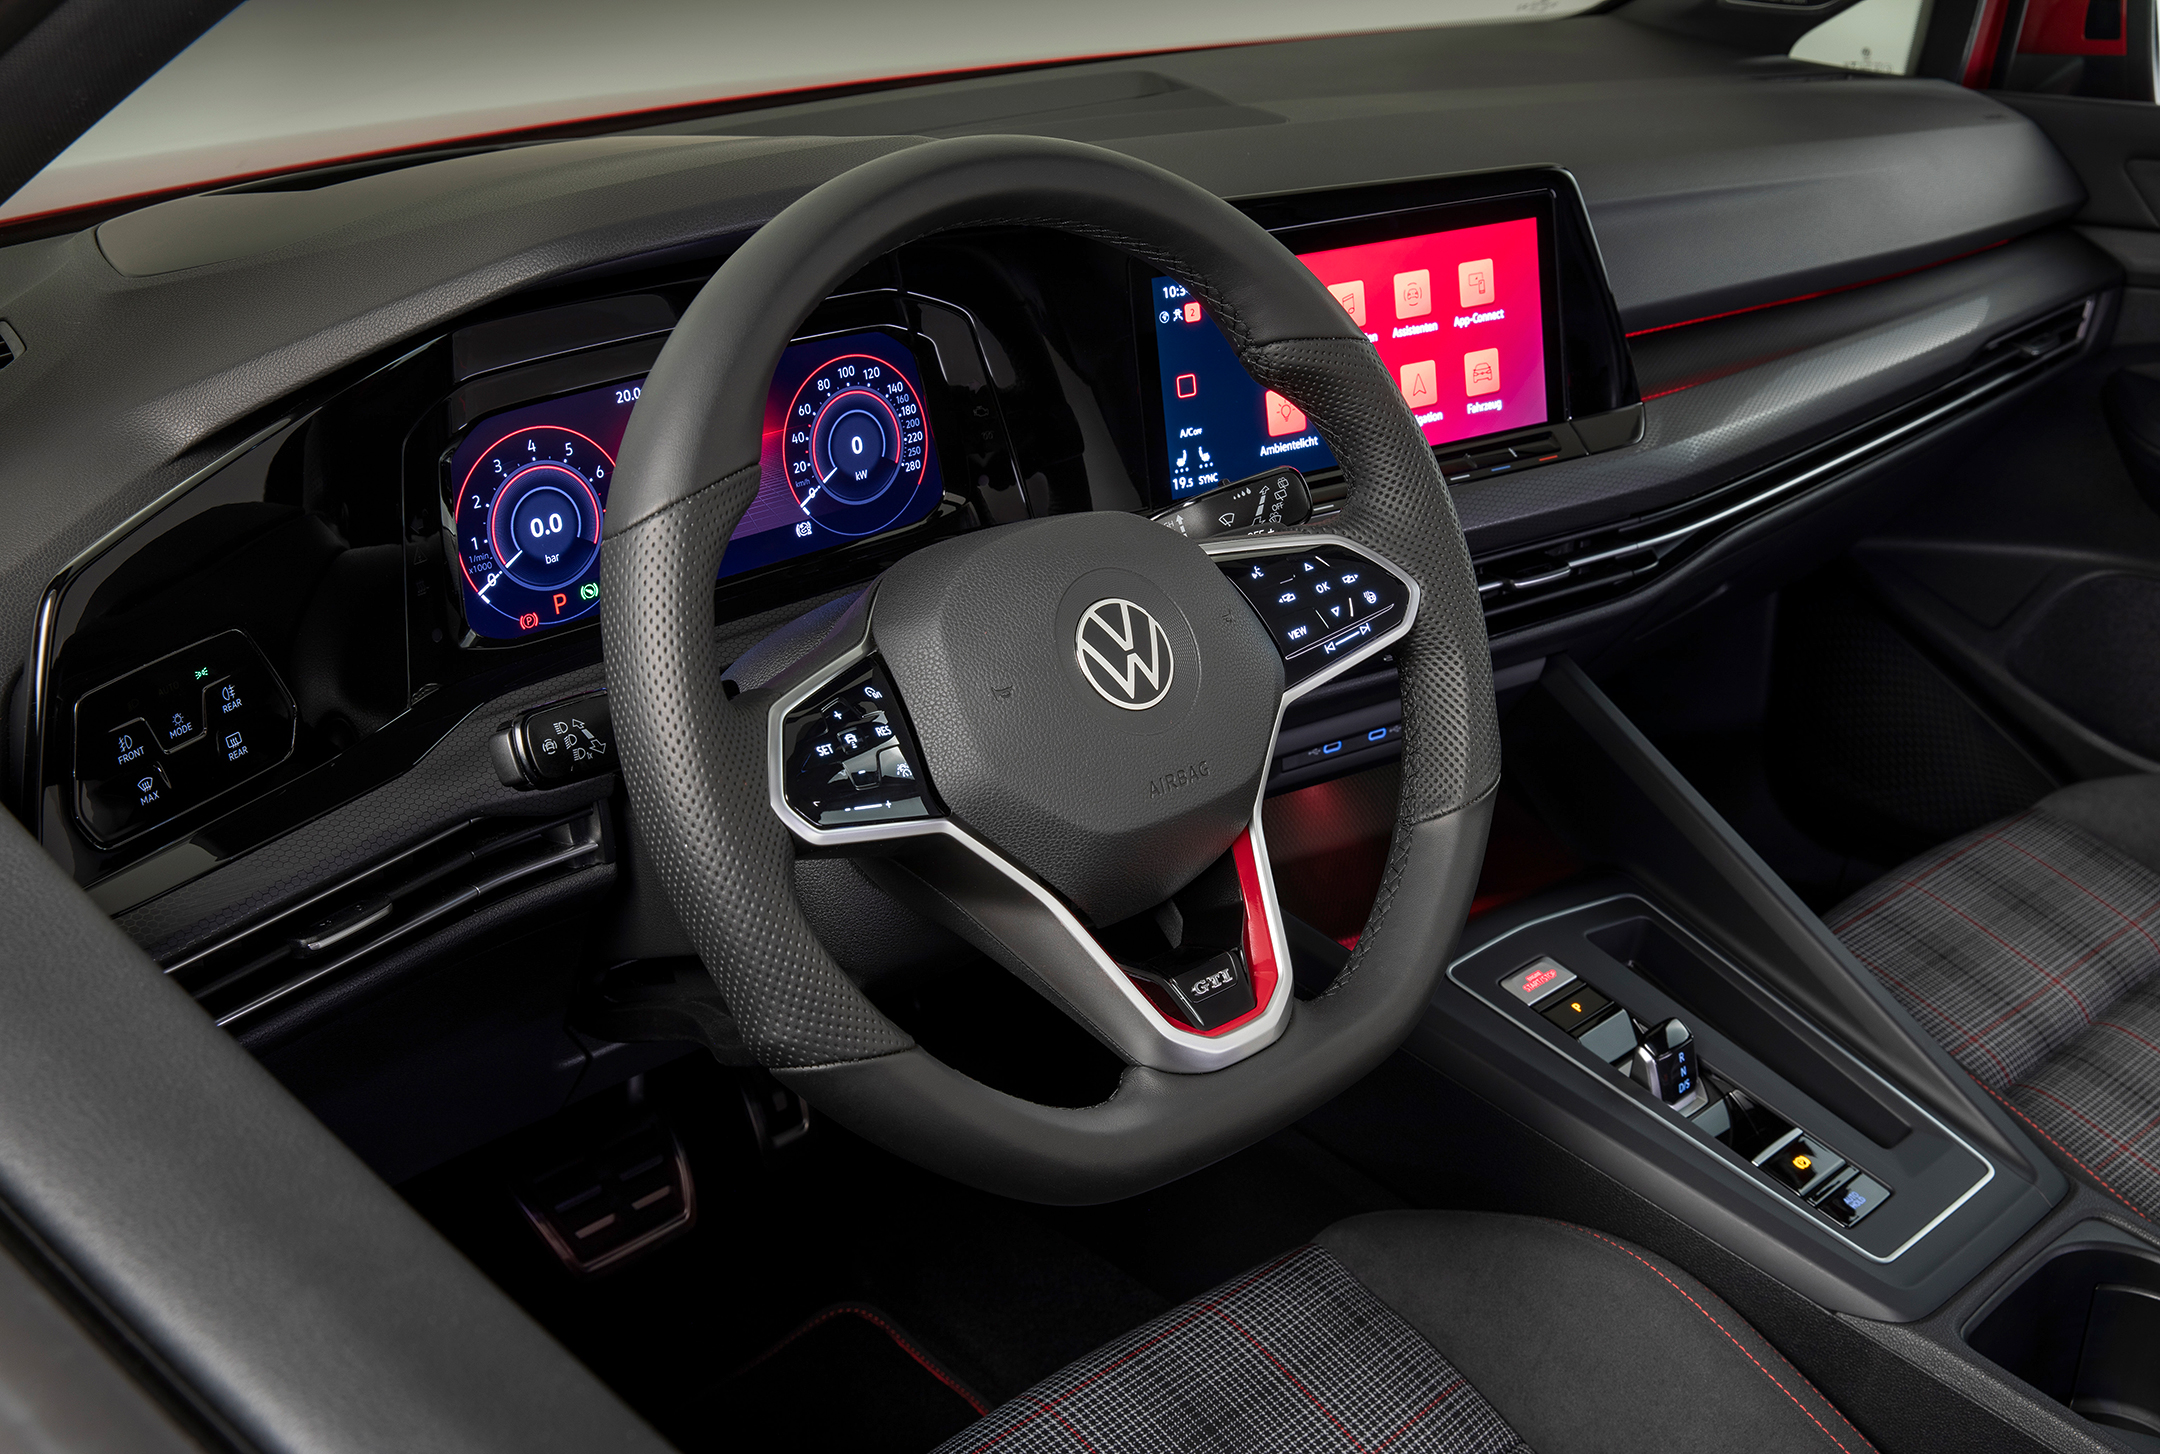 Volkswagen Golf GTI - 2020 - interior / intérieur - side view